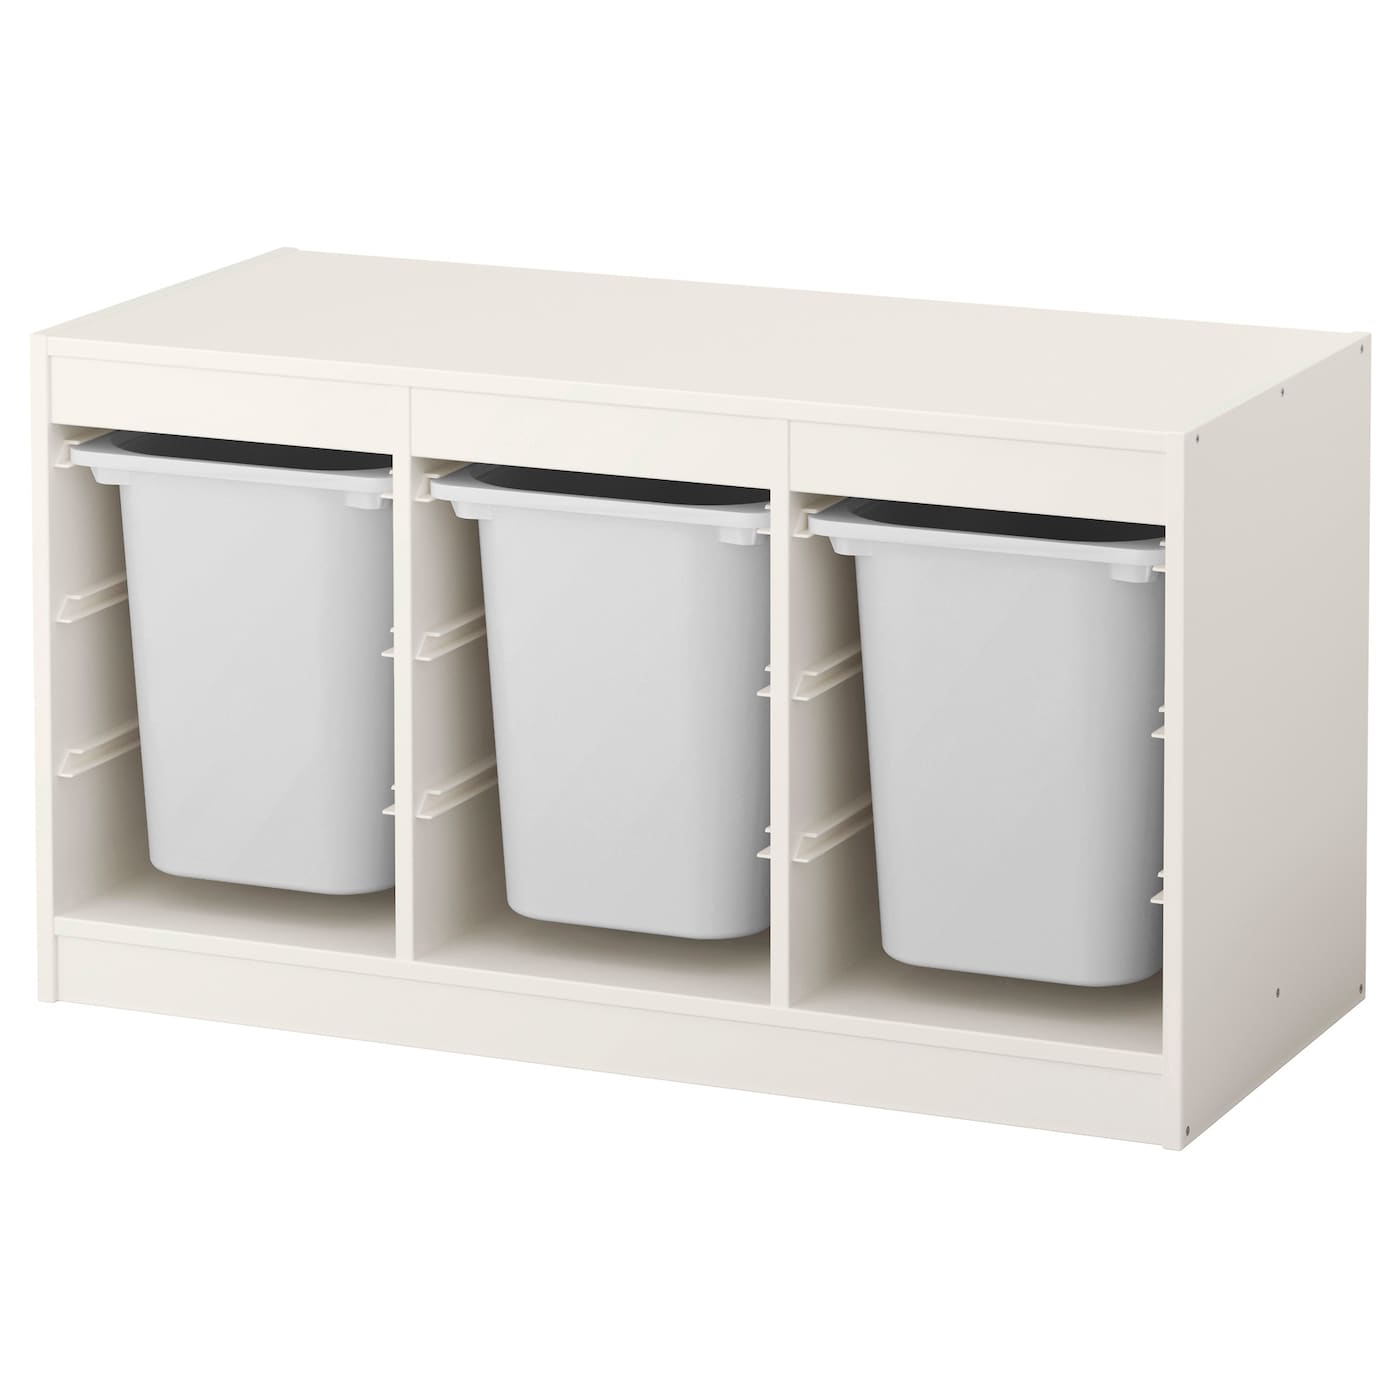 trofast storage combination with boxes white white 99 x 44 x 56 cm ikea. Black Bedroom Furniture Sets. Home Design Ideas